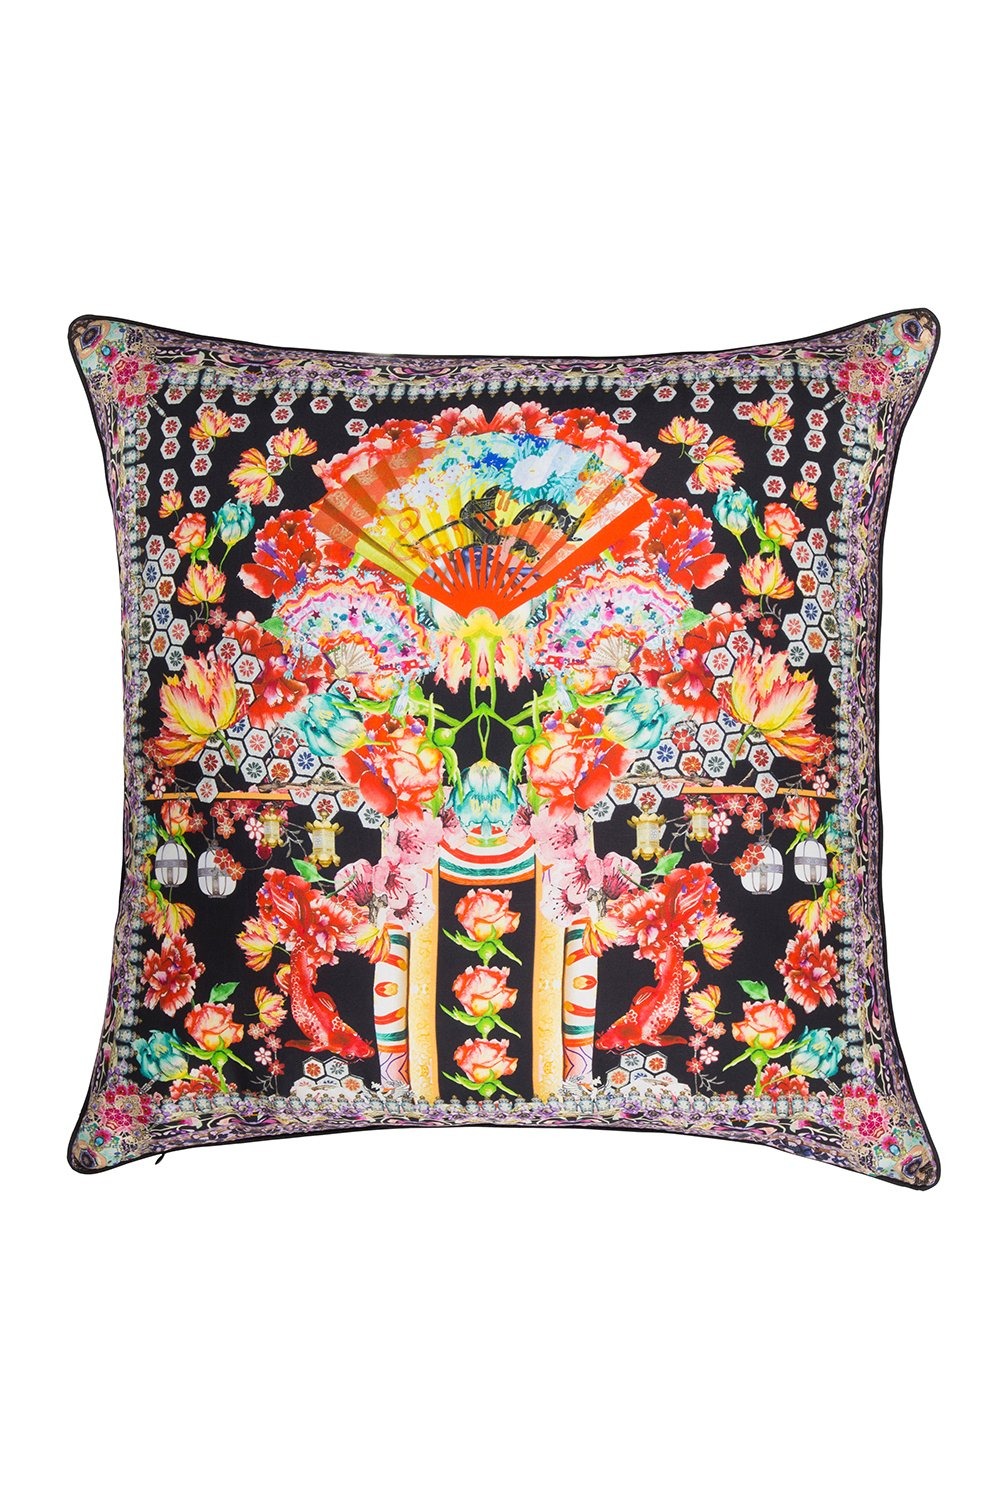 LARGE SQUARE CUSHION PAINTED LAND